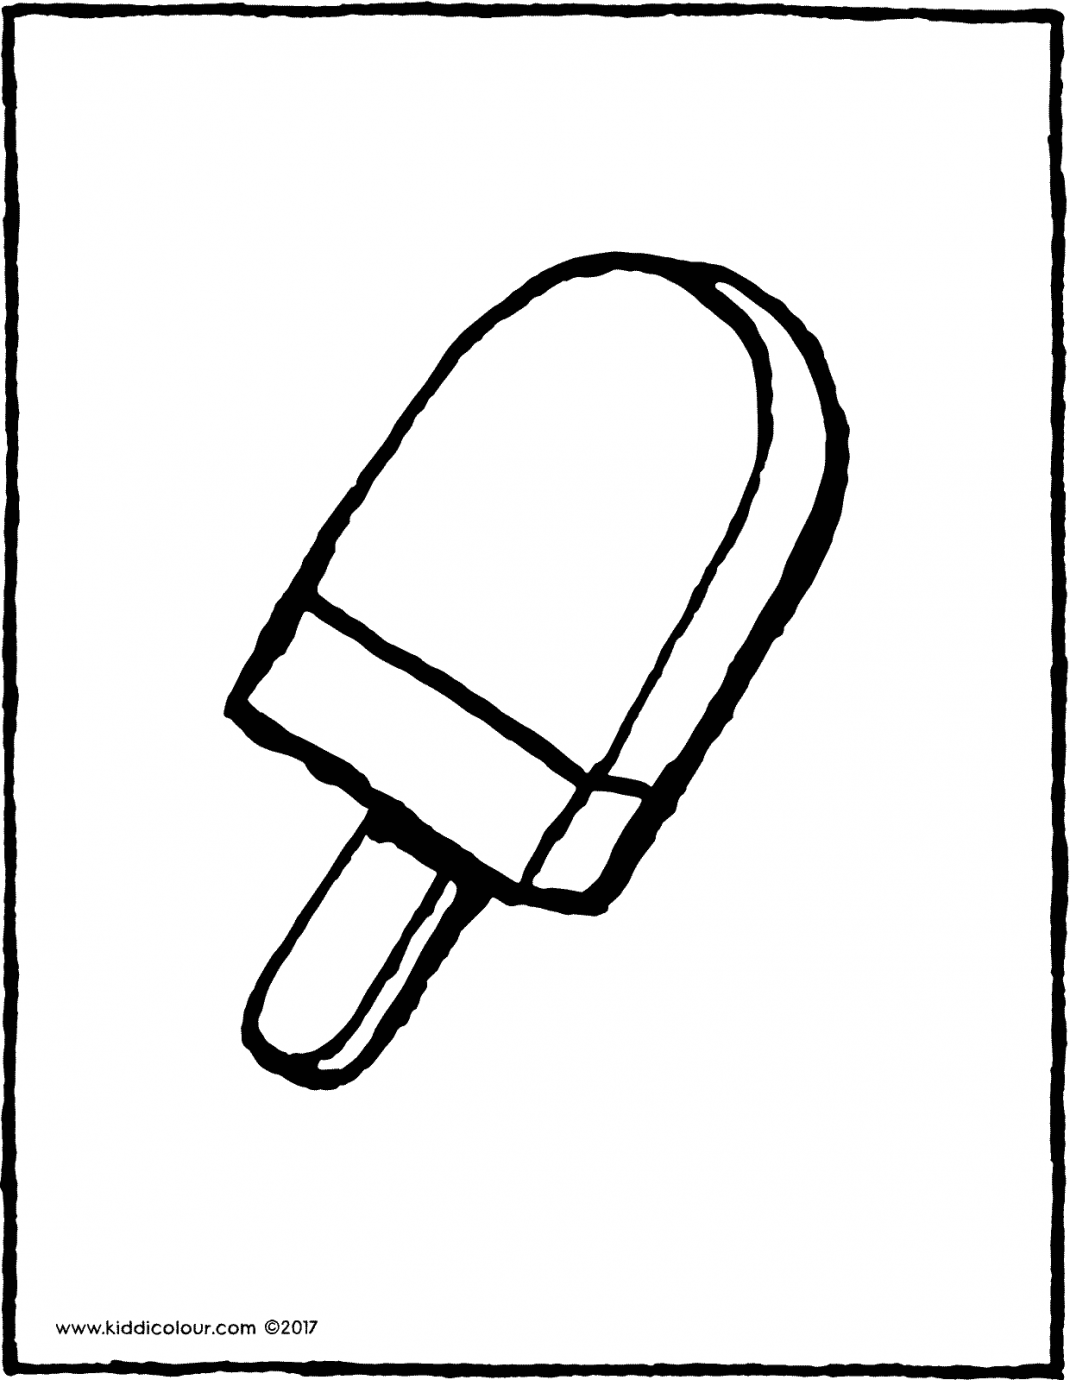 ice-cream on a stick colouring page page drawing picture 01V